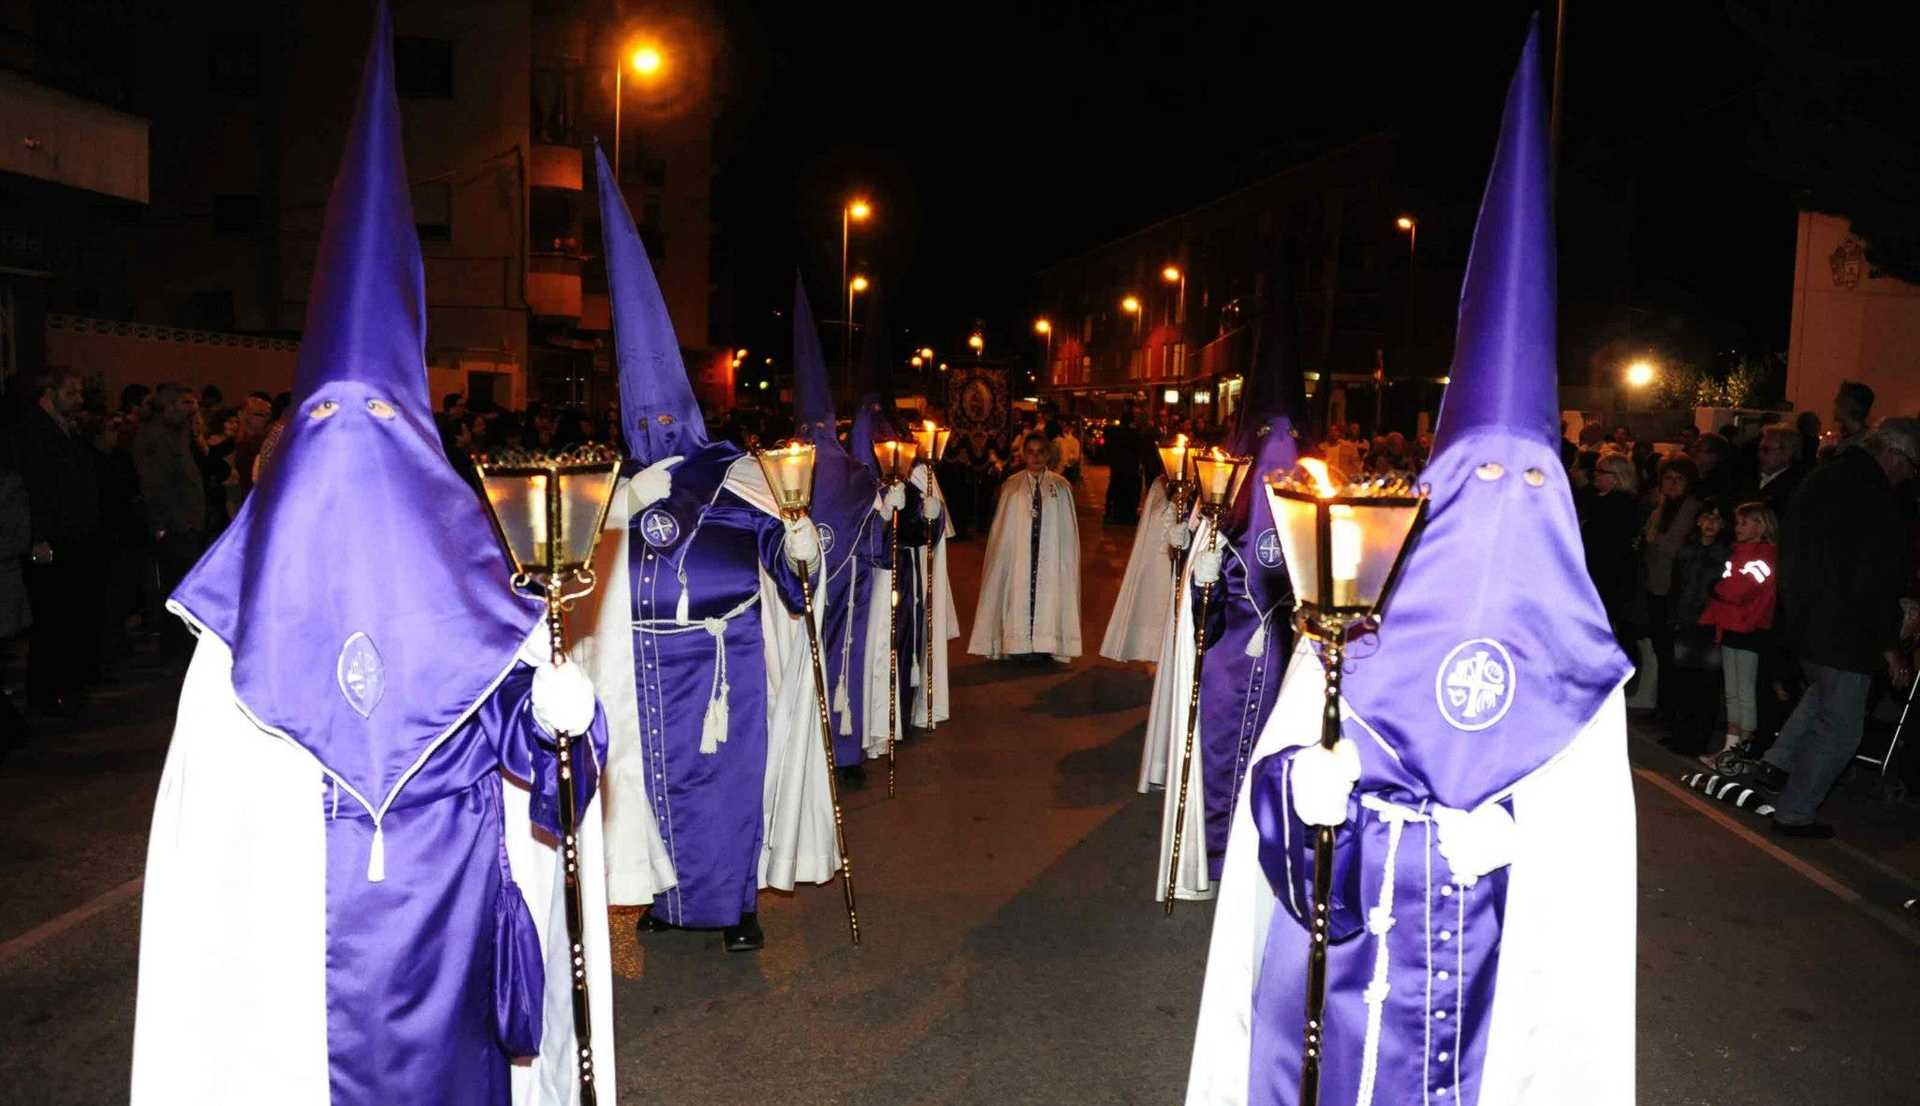 Holy Week Dénia 2019